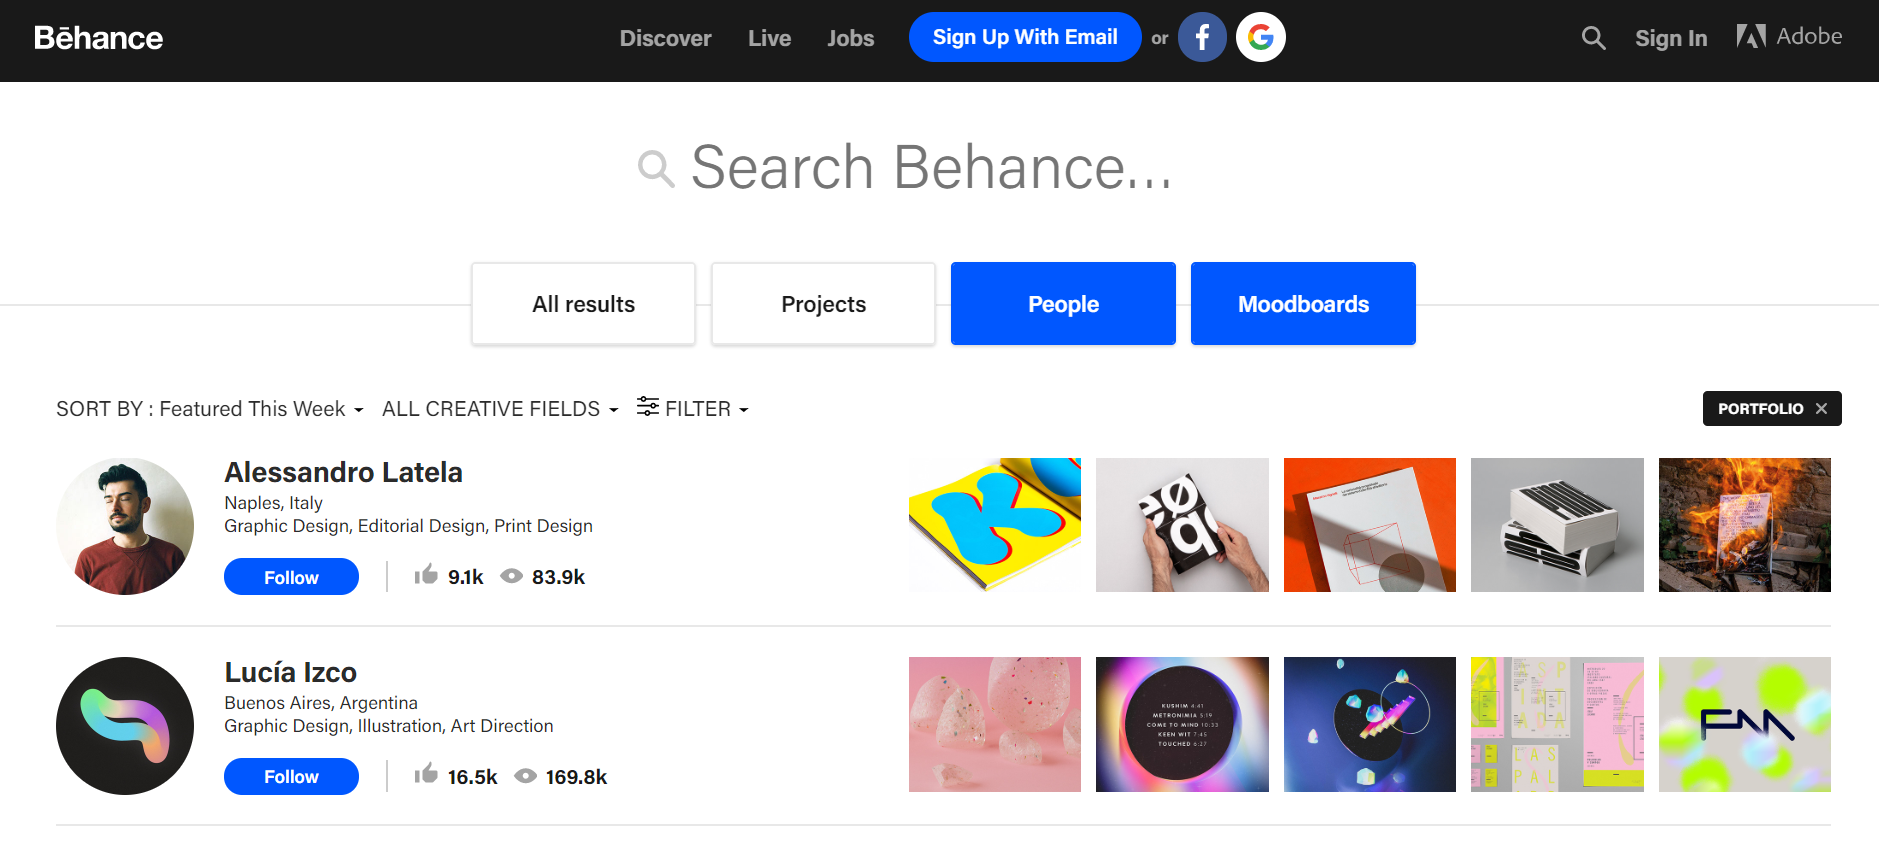 Social Media Recruiting through Behance